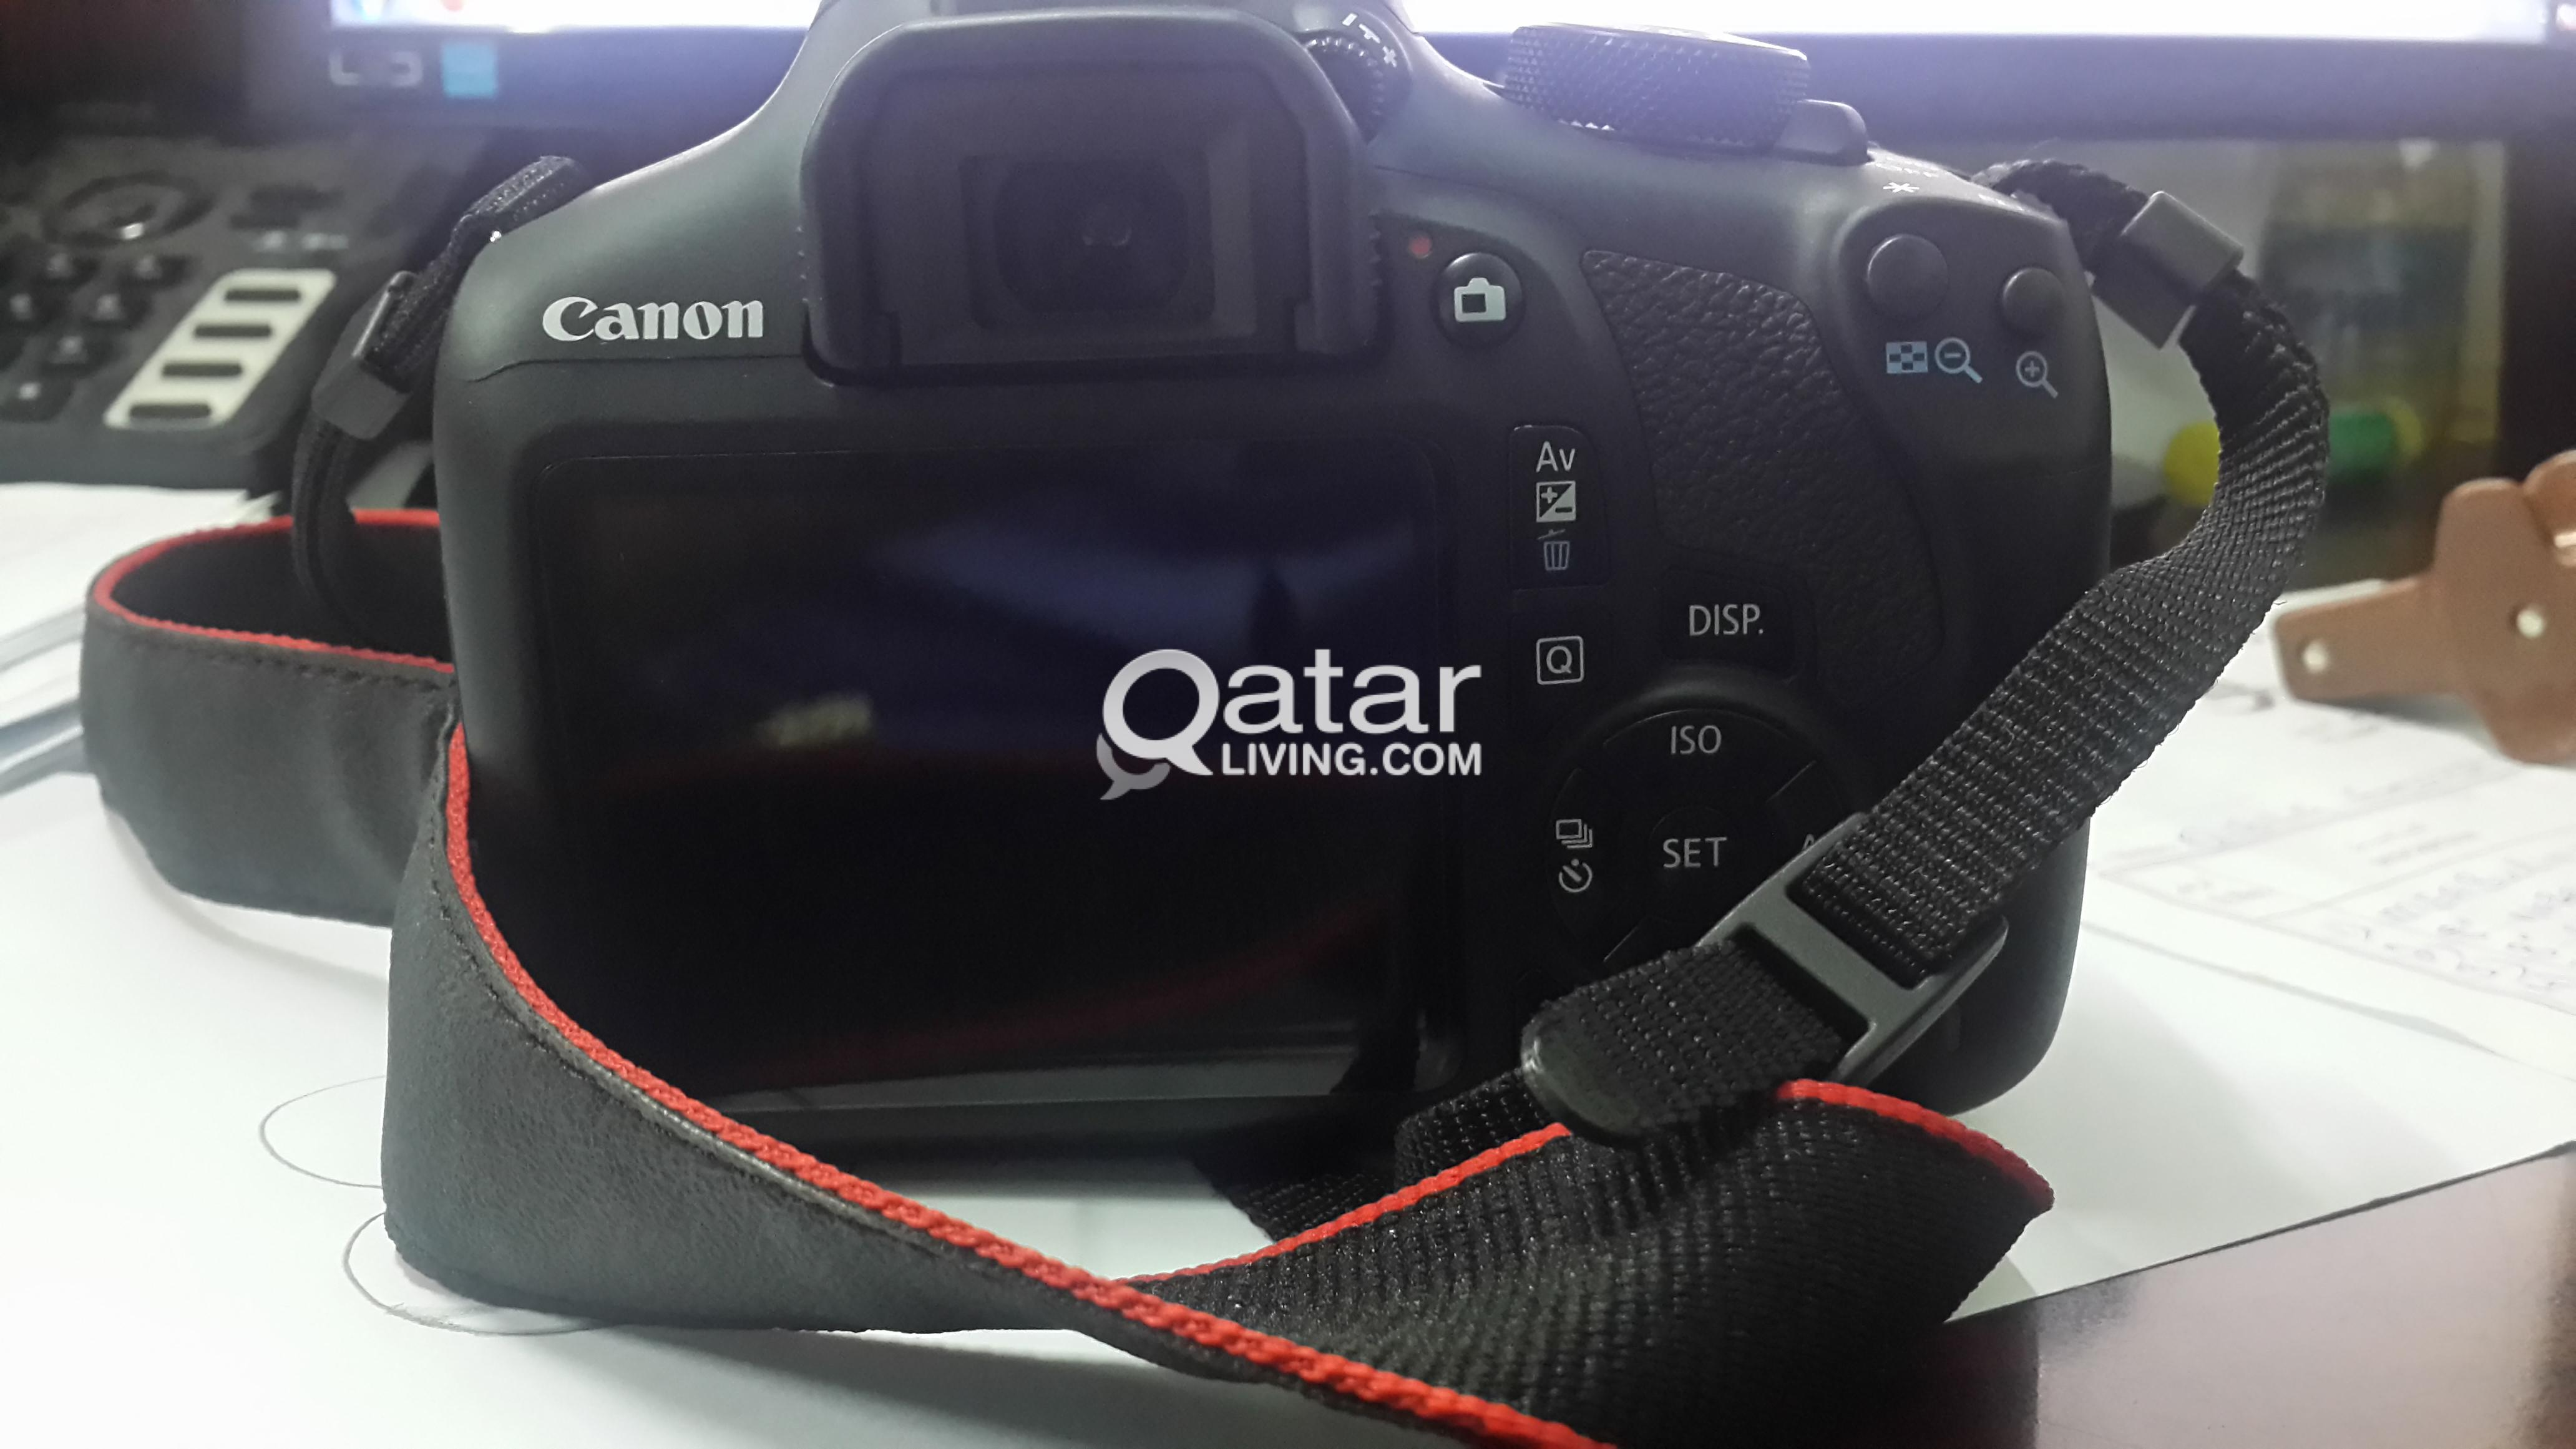 CANON 1300D DSLR with WiFi +18-55mm lens+bag | Qatar Living